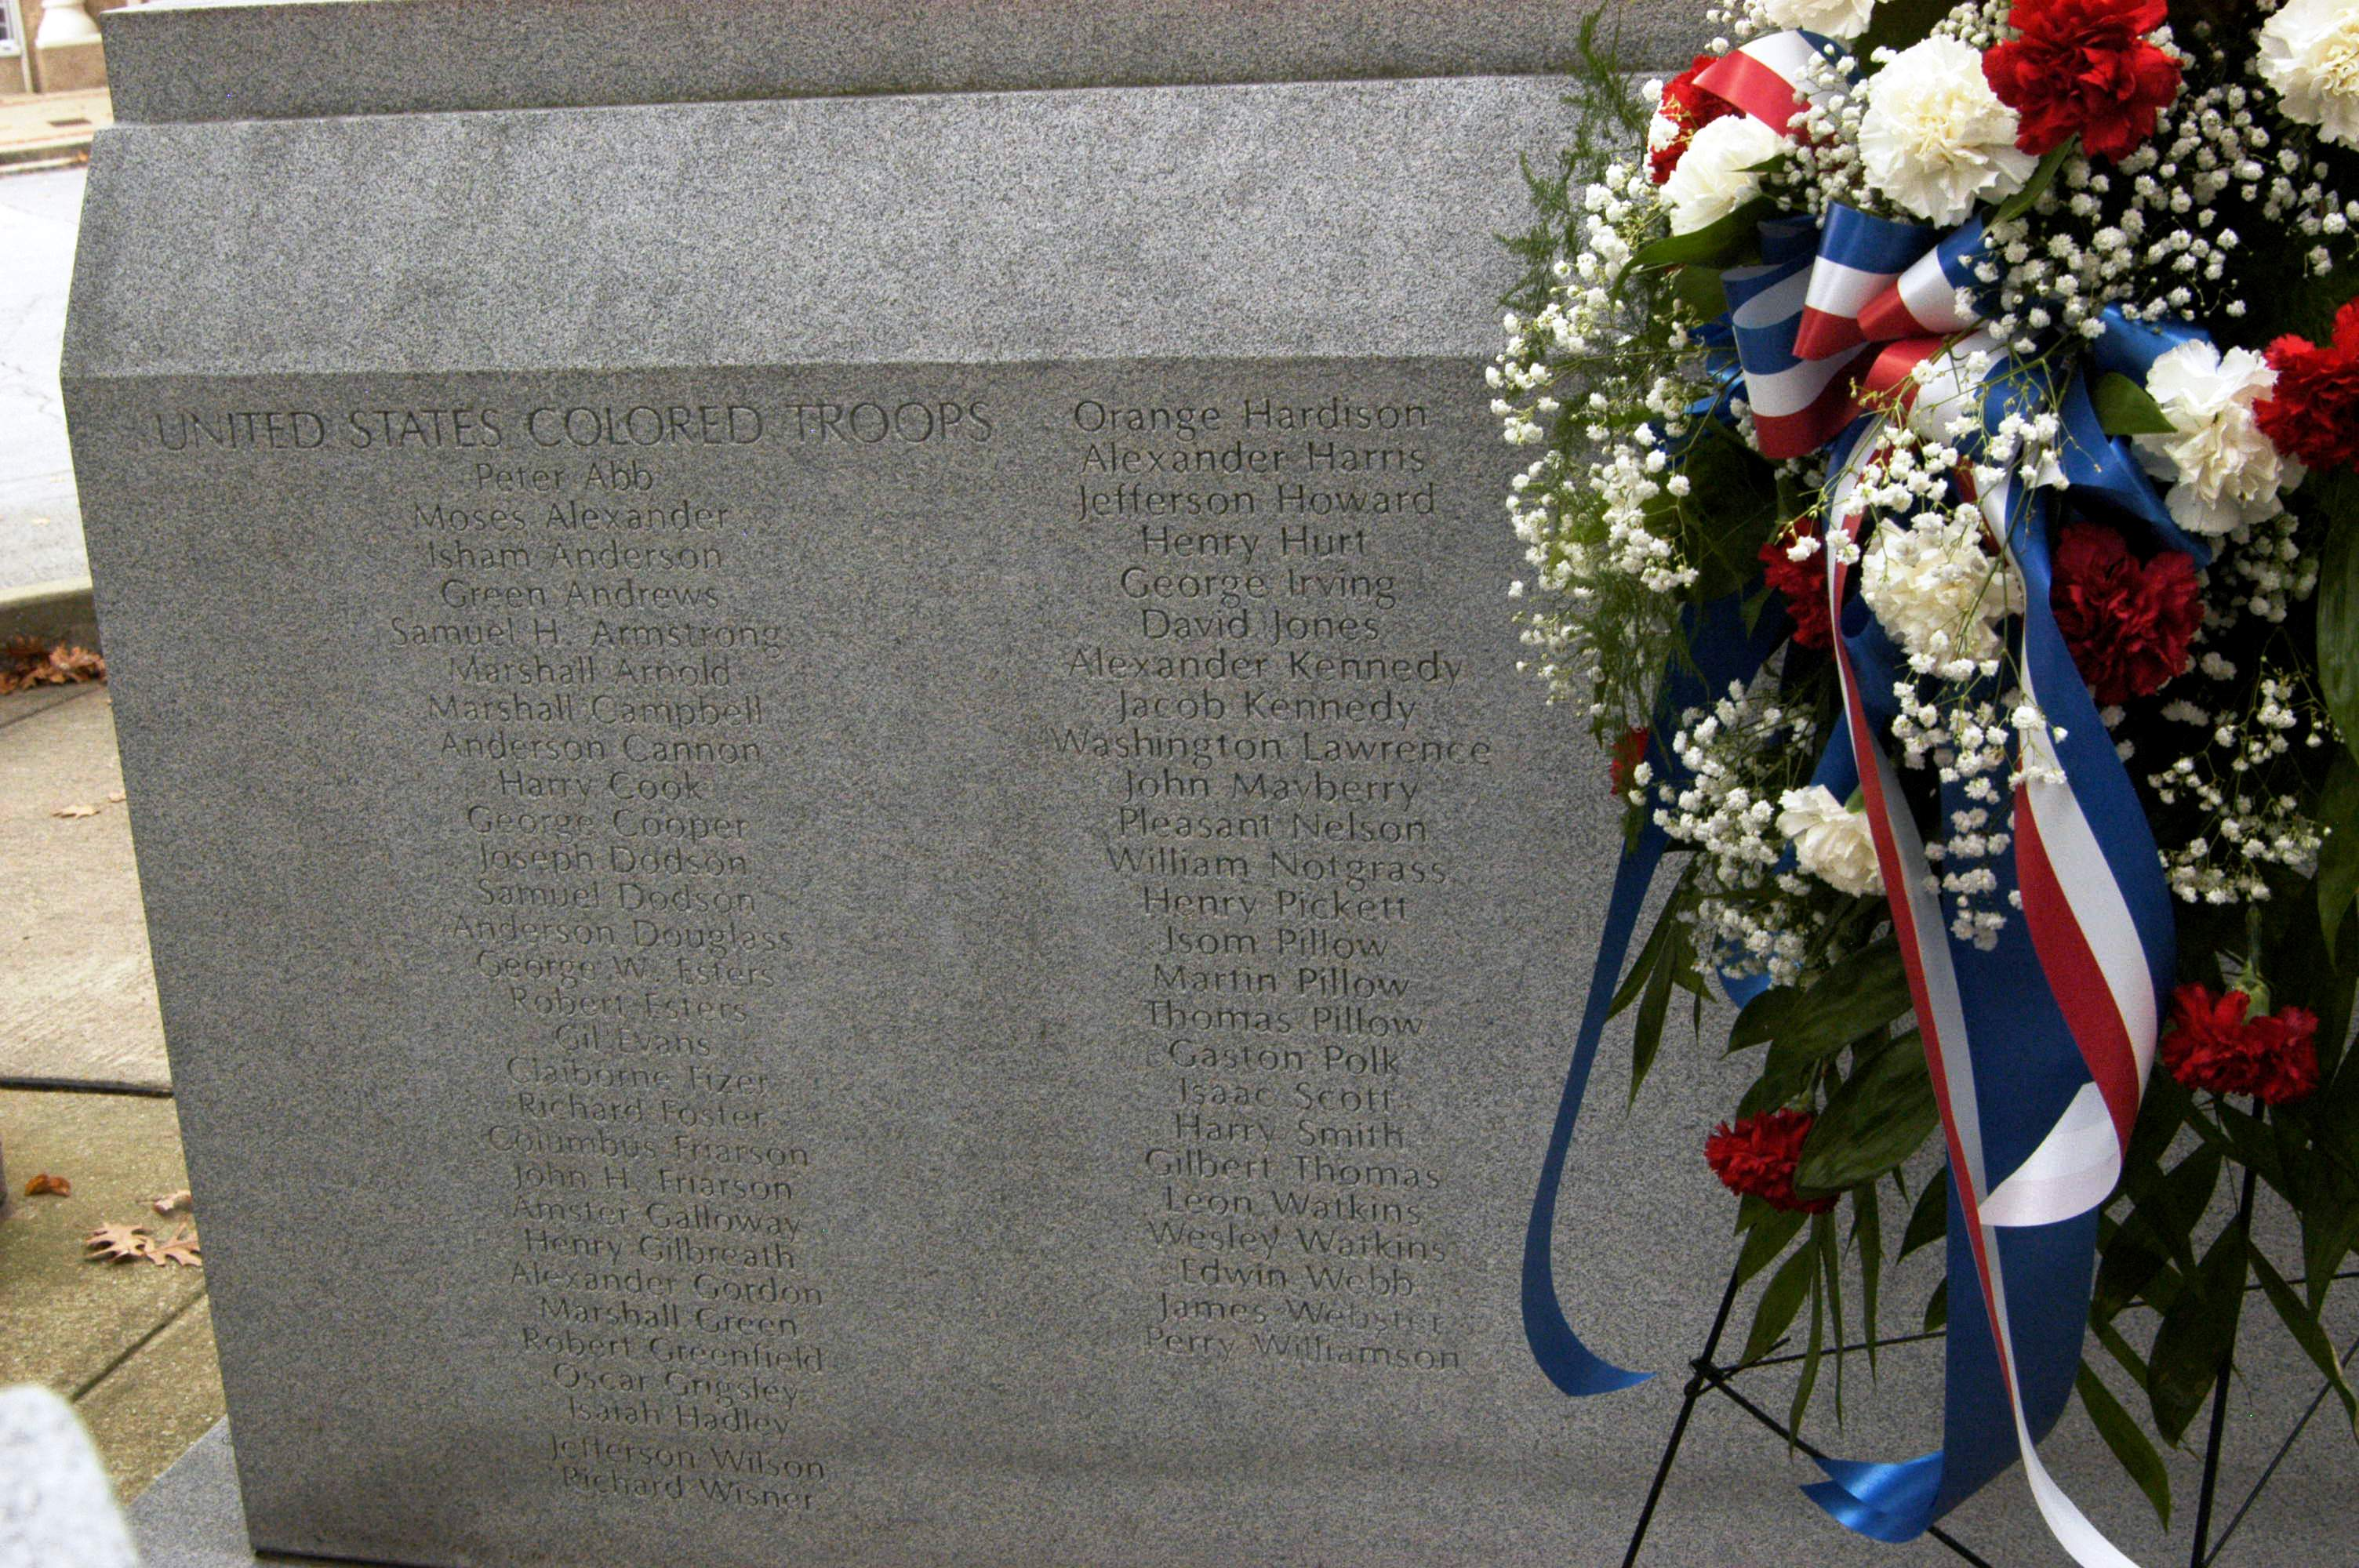 The base of the monument where fifty-four names of the United States Colored Troops as well as four federal soldiers who died in action during the Civil War were added in 2013.